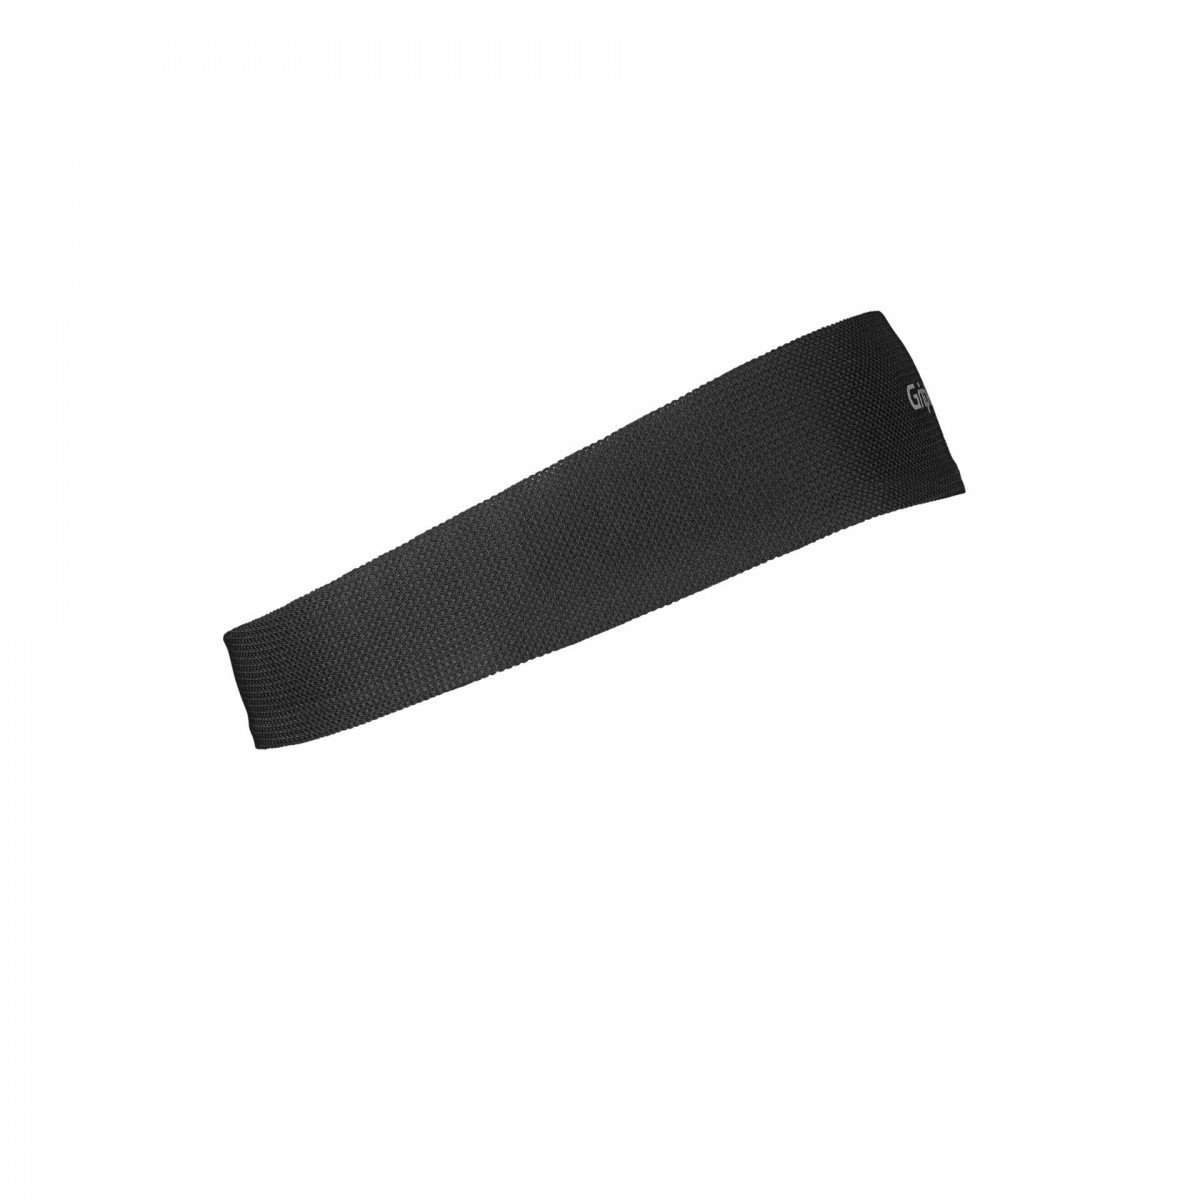 EAN-code: 5708486007753 Brand: GRIPGRAB Product: ZOMER ZWEETBAND ONE SIZE ZWART (Part-No: 502301207) at cycleXperience.nl